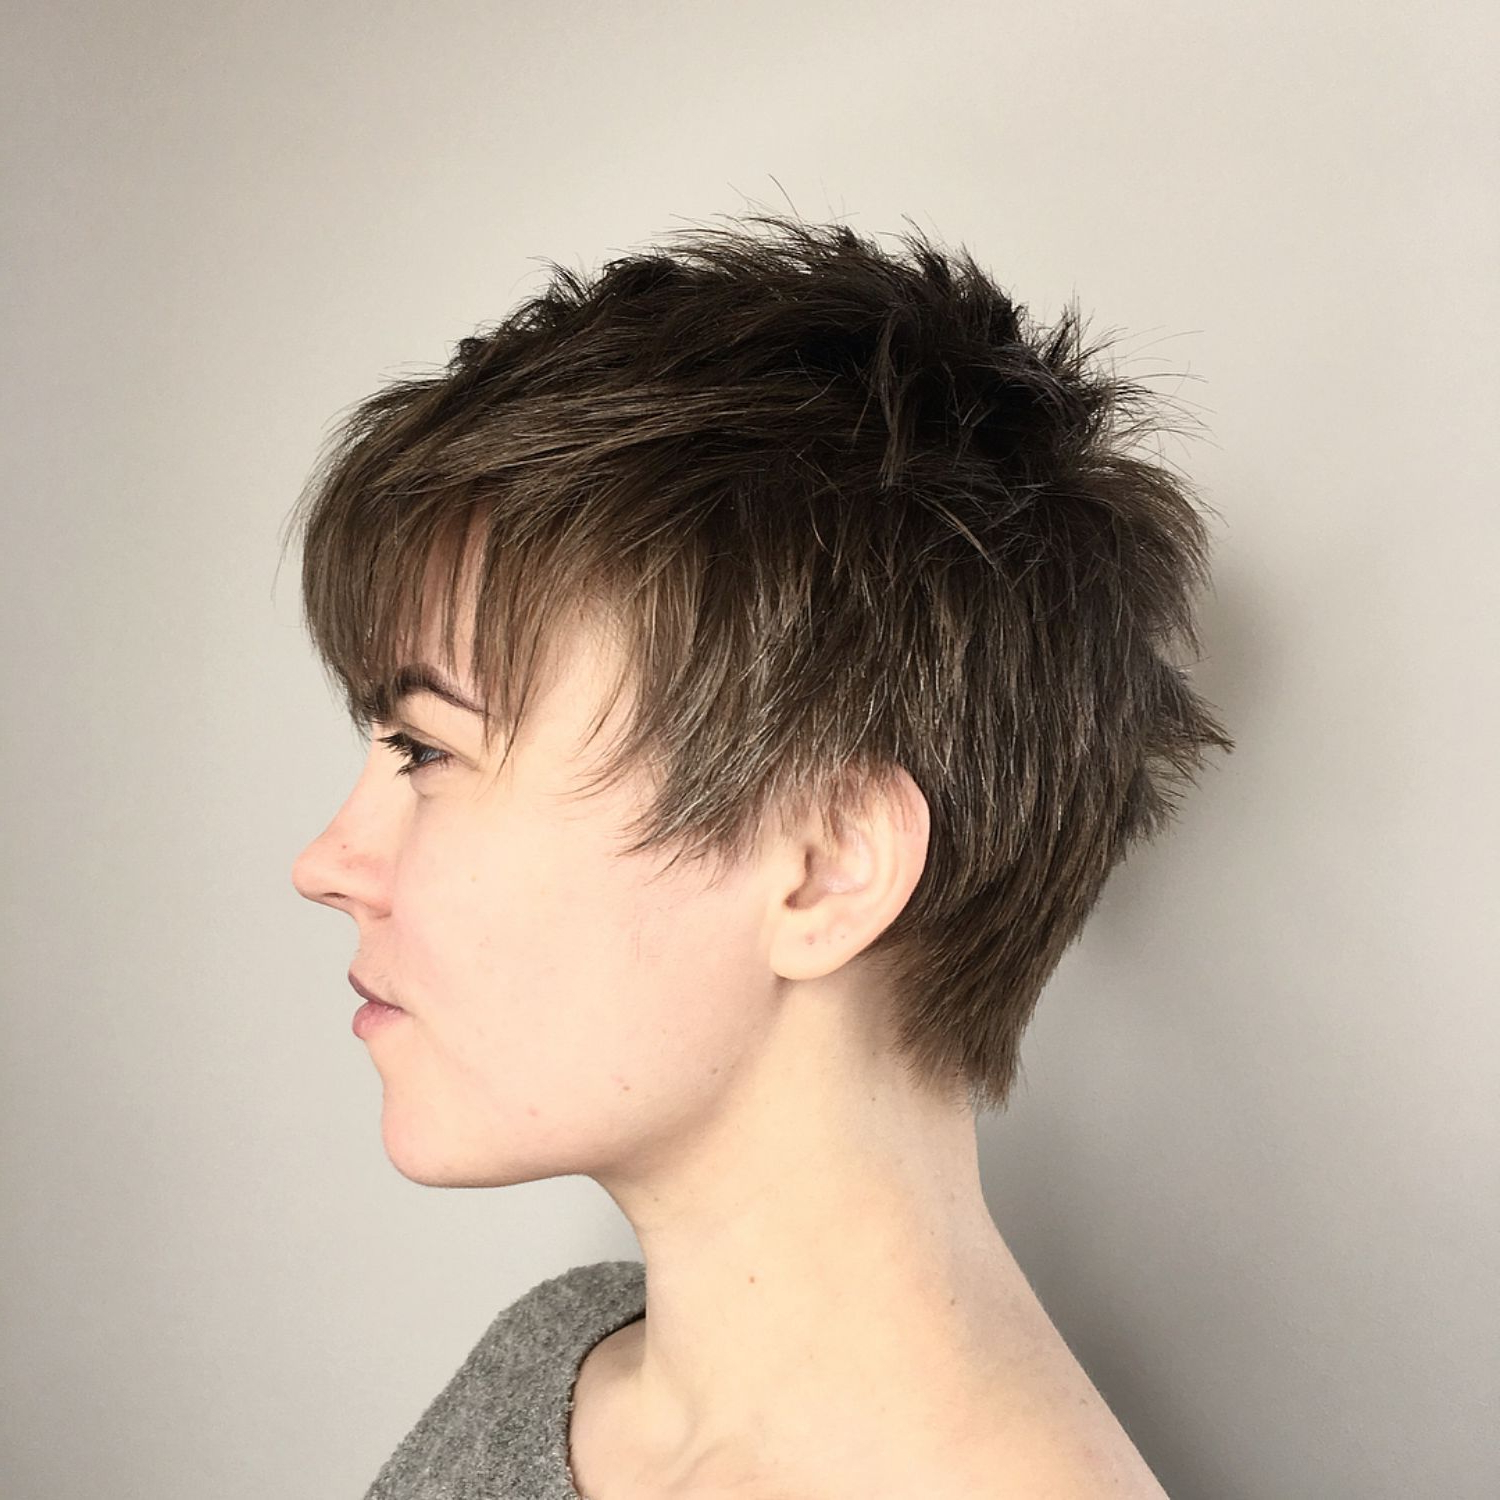 60 Cute Short Pixie Haircuts – Femininity And Practicality Within Widely Used Choppy Pixie Haircuts With Short Bangs (Gallery 8 of 20)